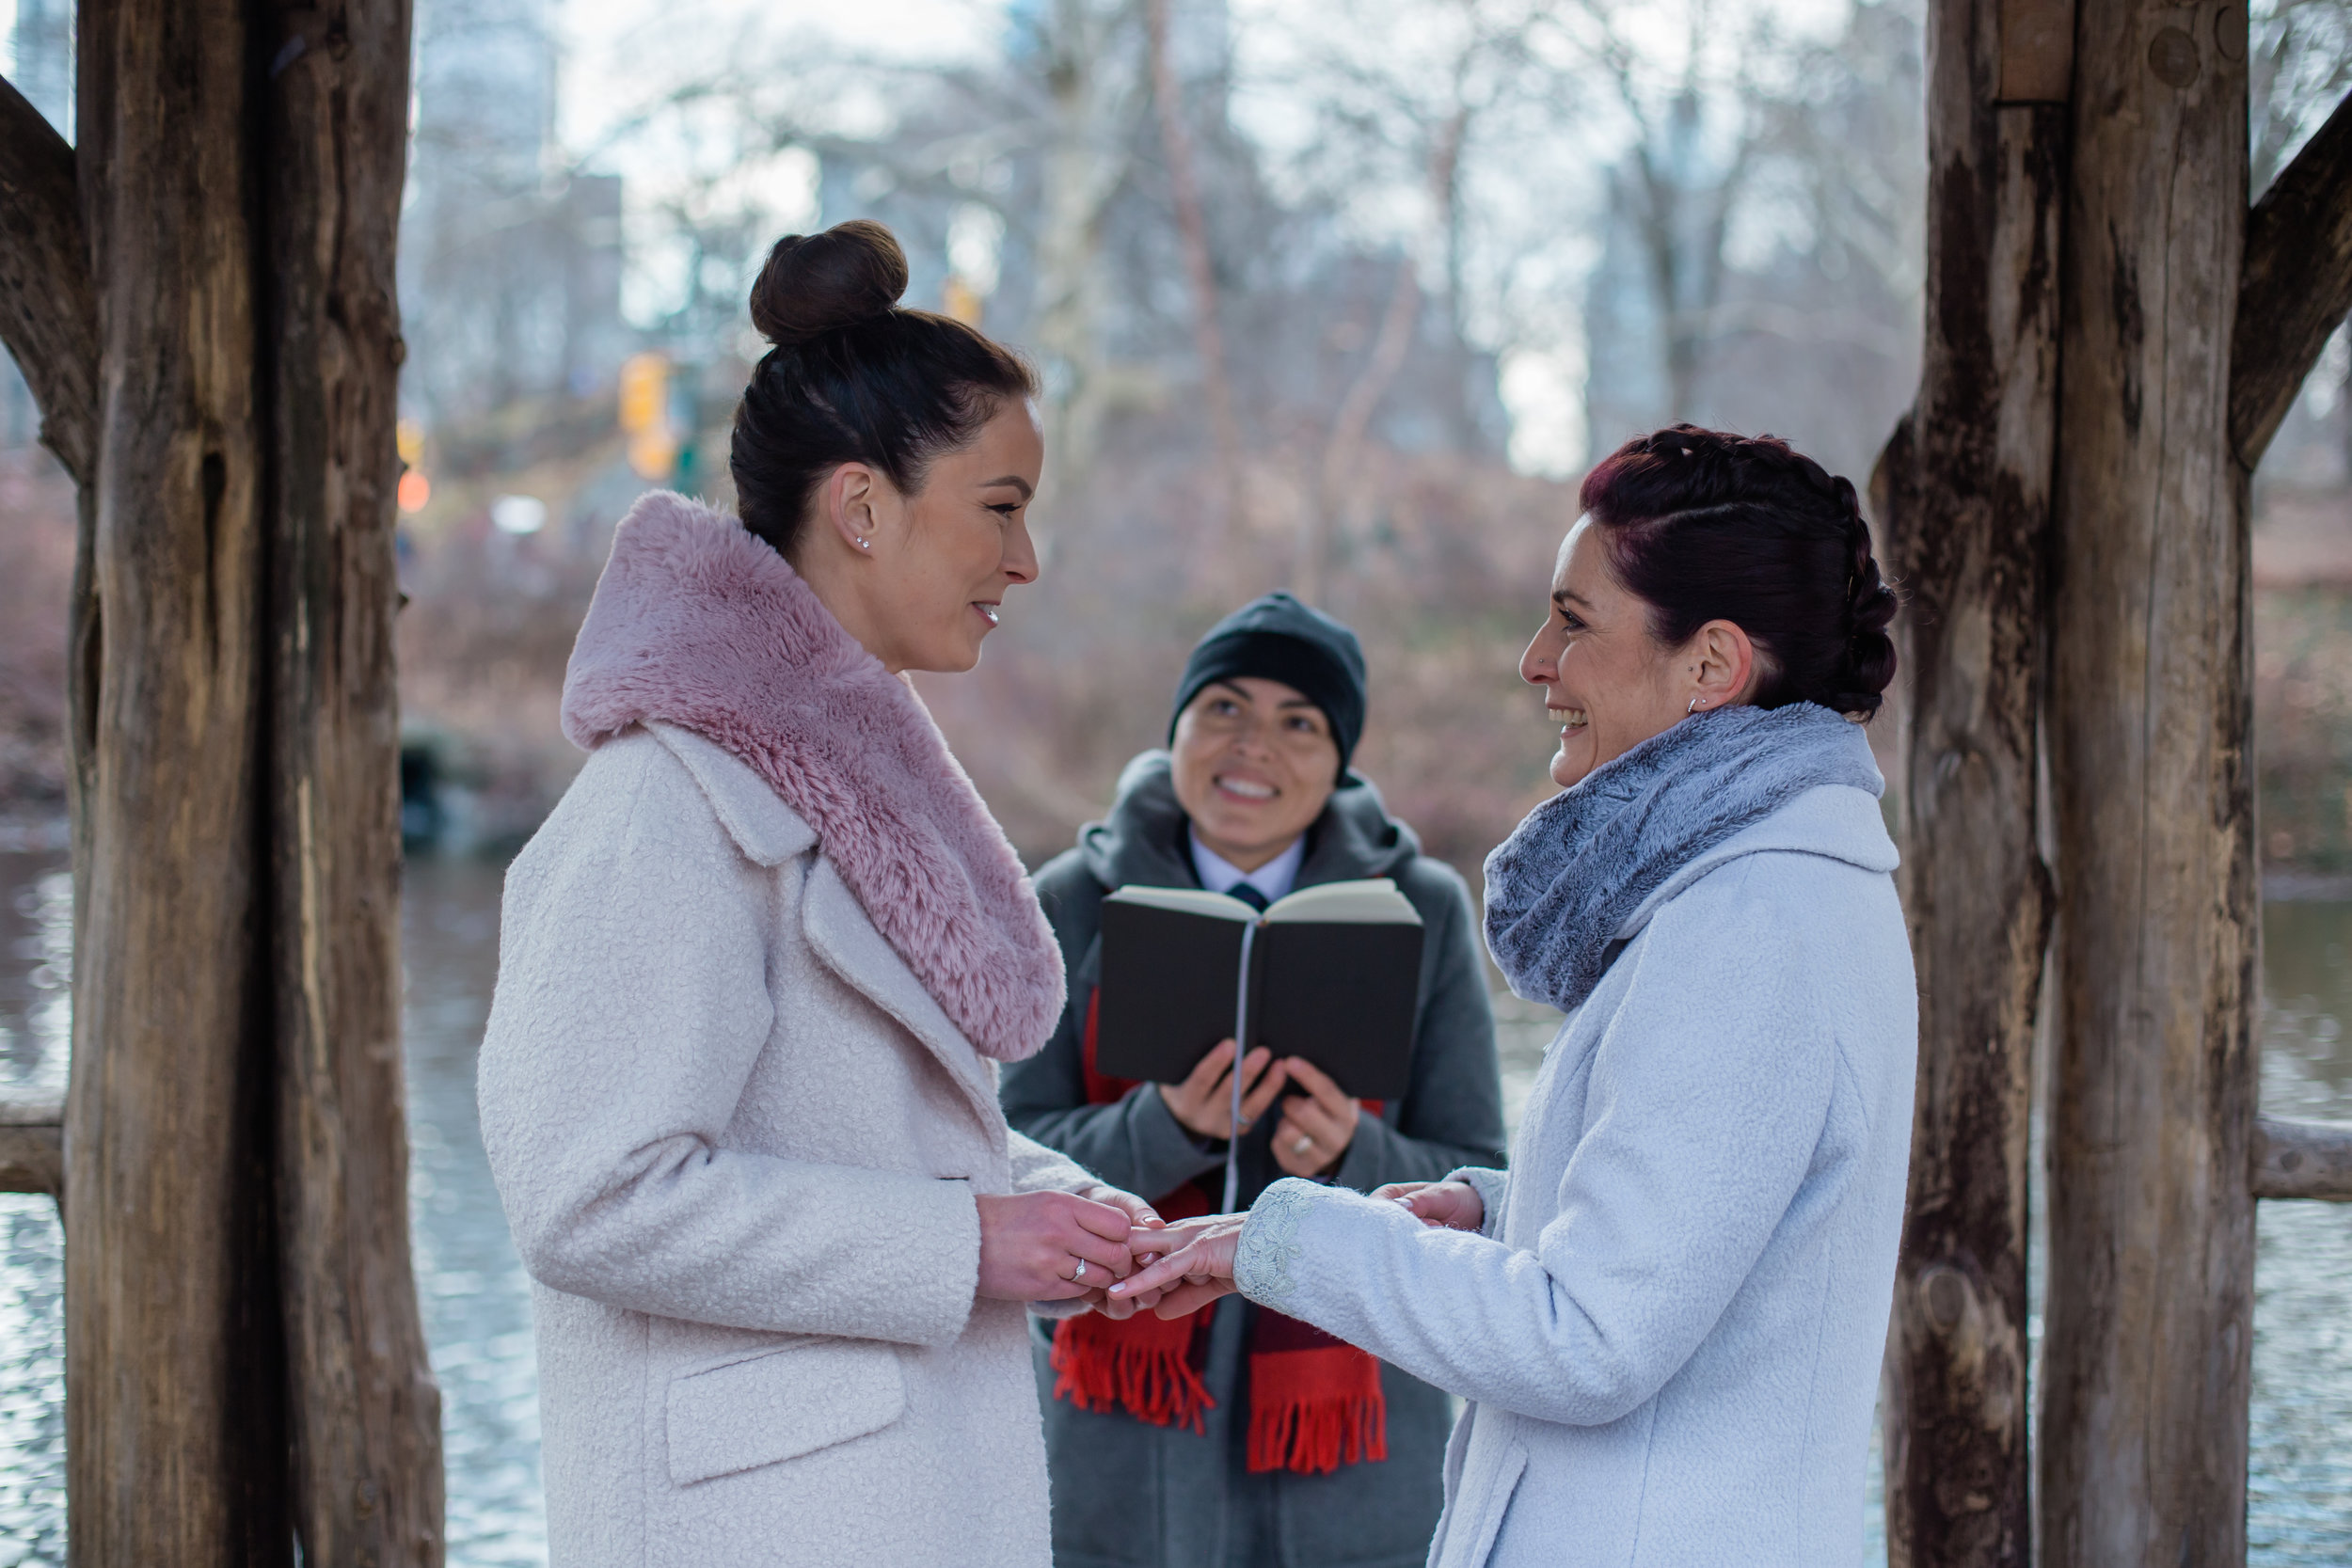 Kate-Alison-Photography-Central-Park-Elopement-Kathryn-Mary-122618-24.jpg